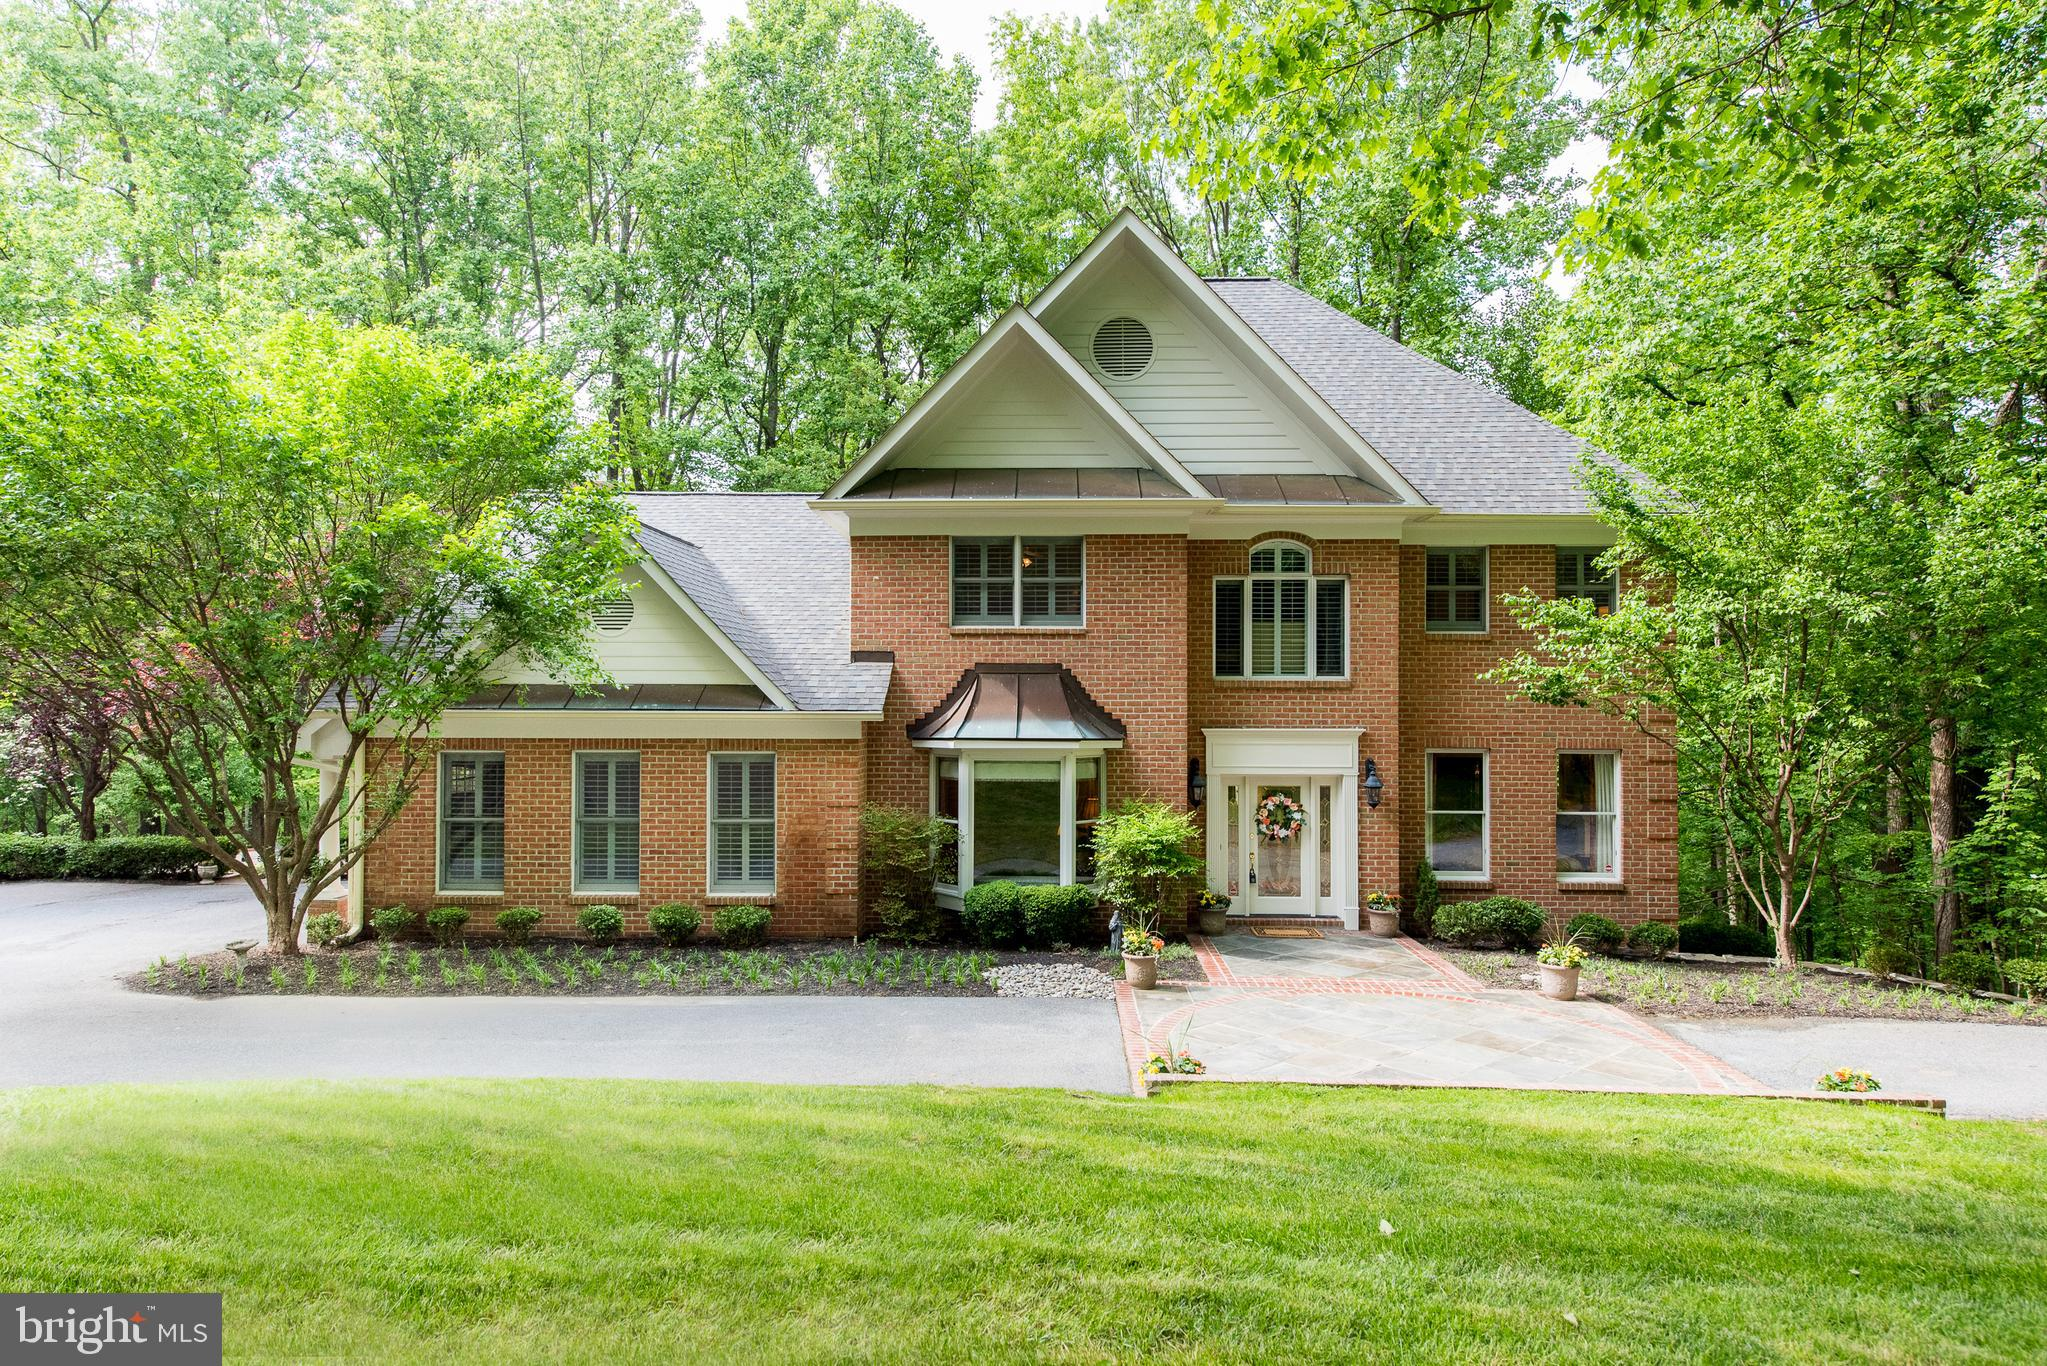 1213 SHADY CREEK ROAD, MARRIOTTSVILLE, MD 21104